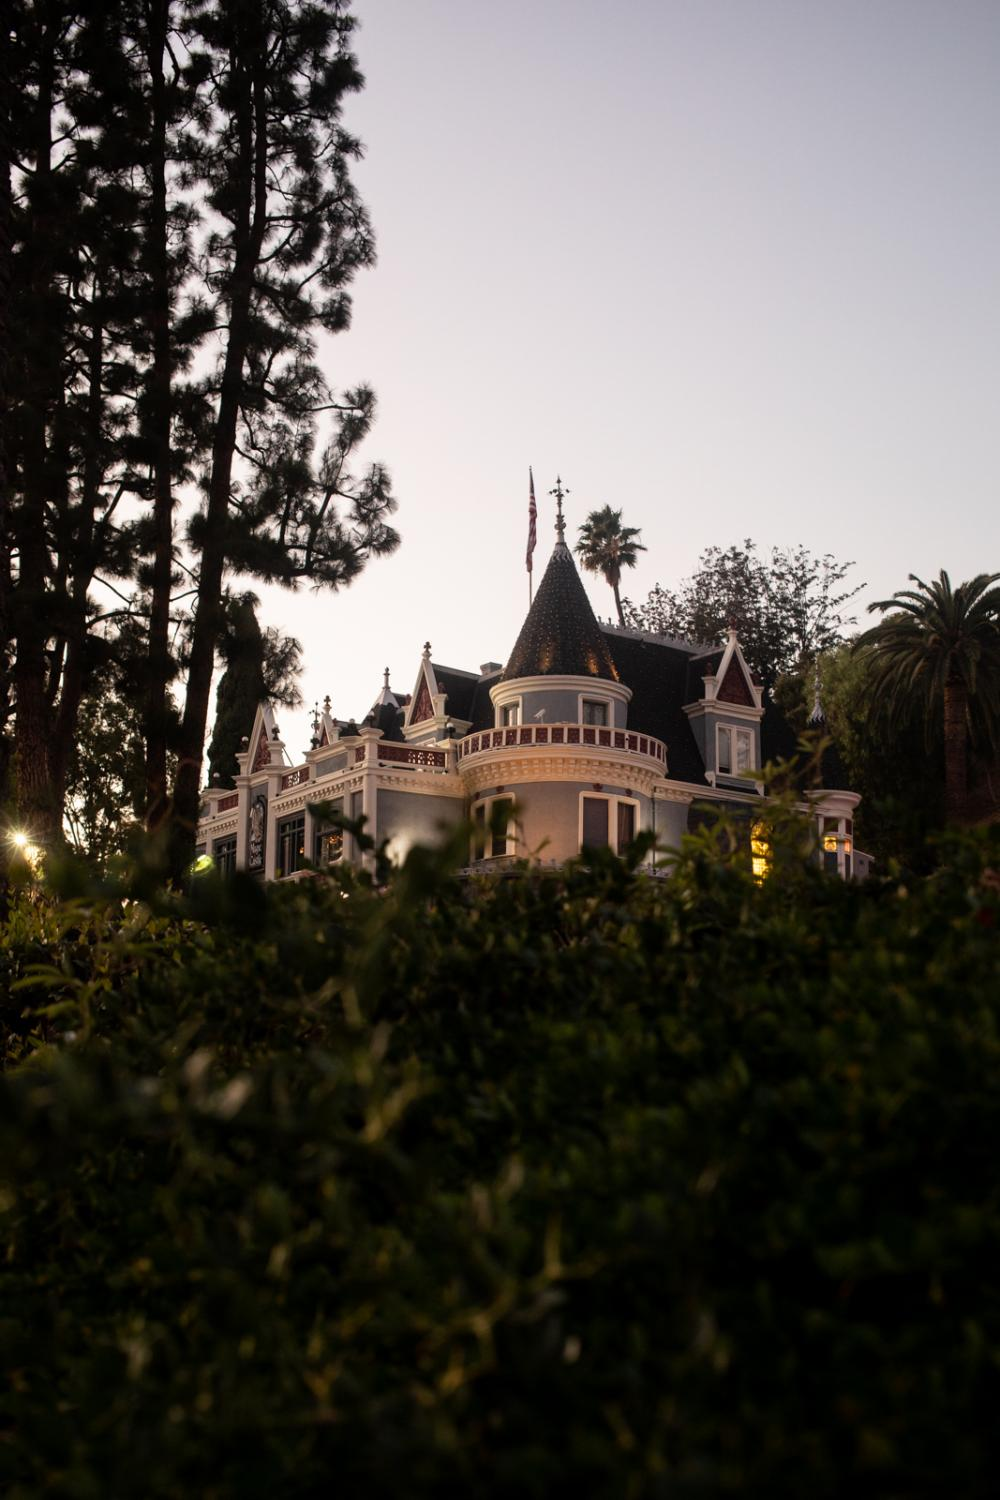 A view of the Magic Castle in Hollywood.